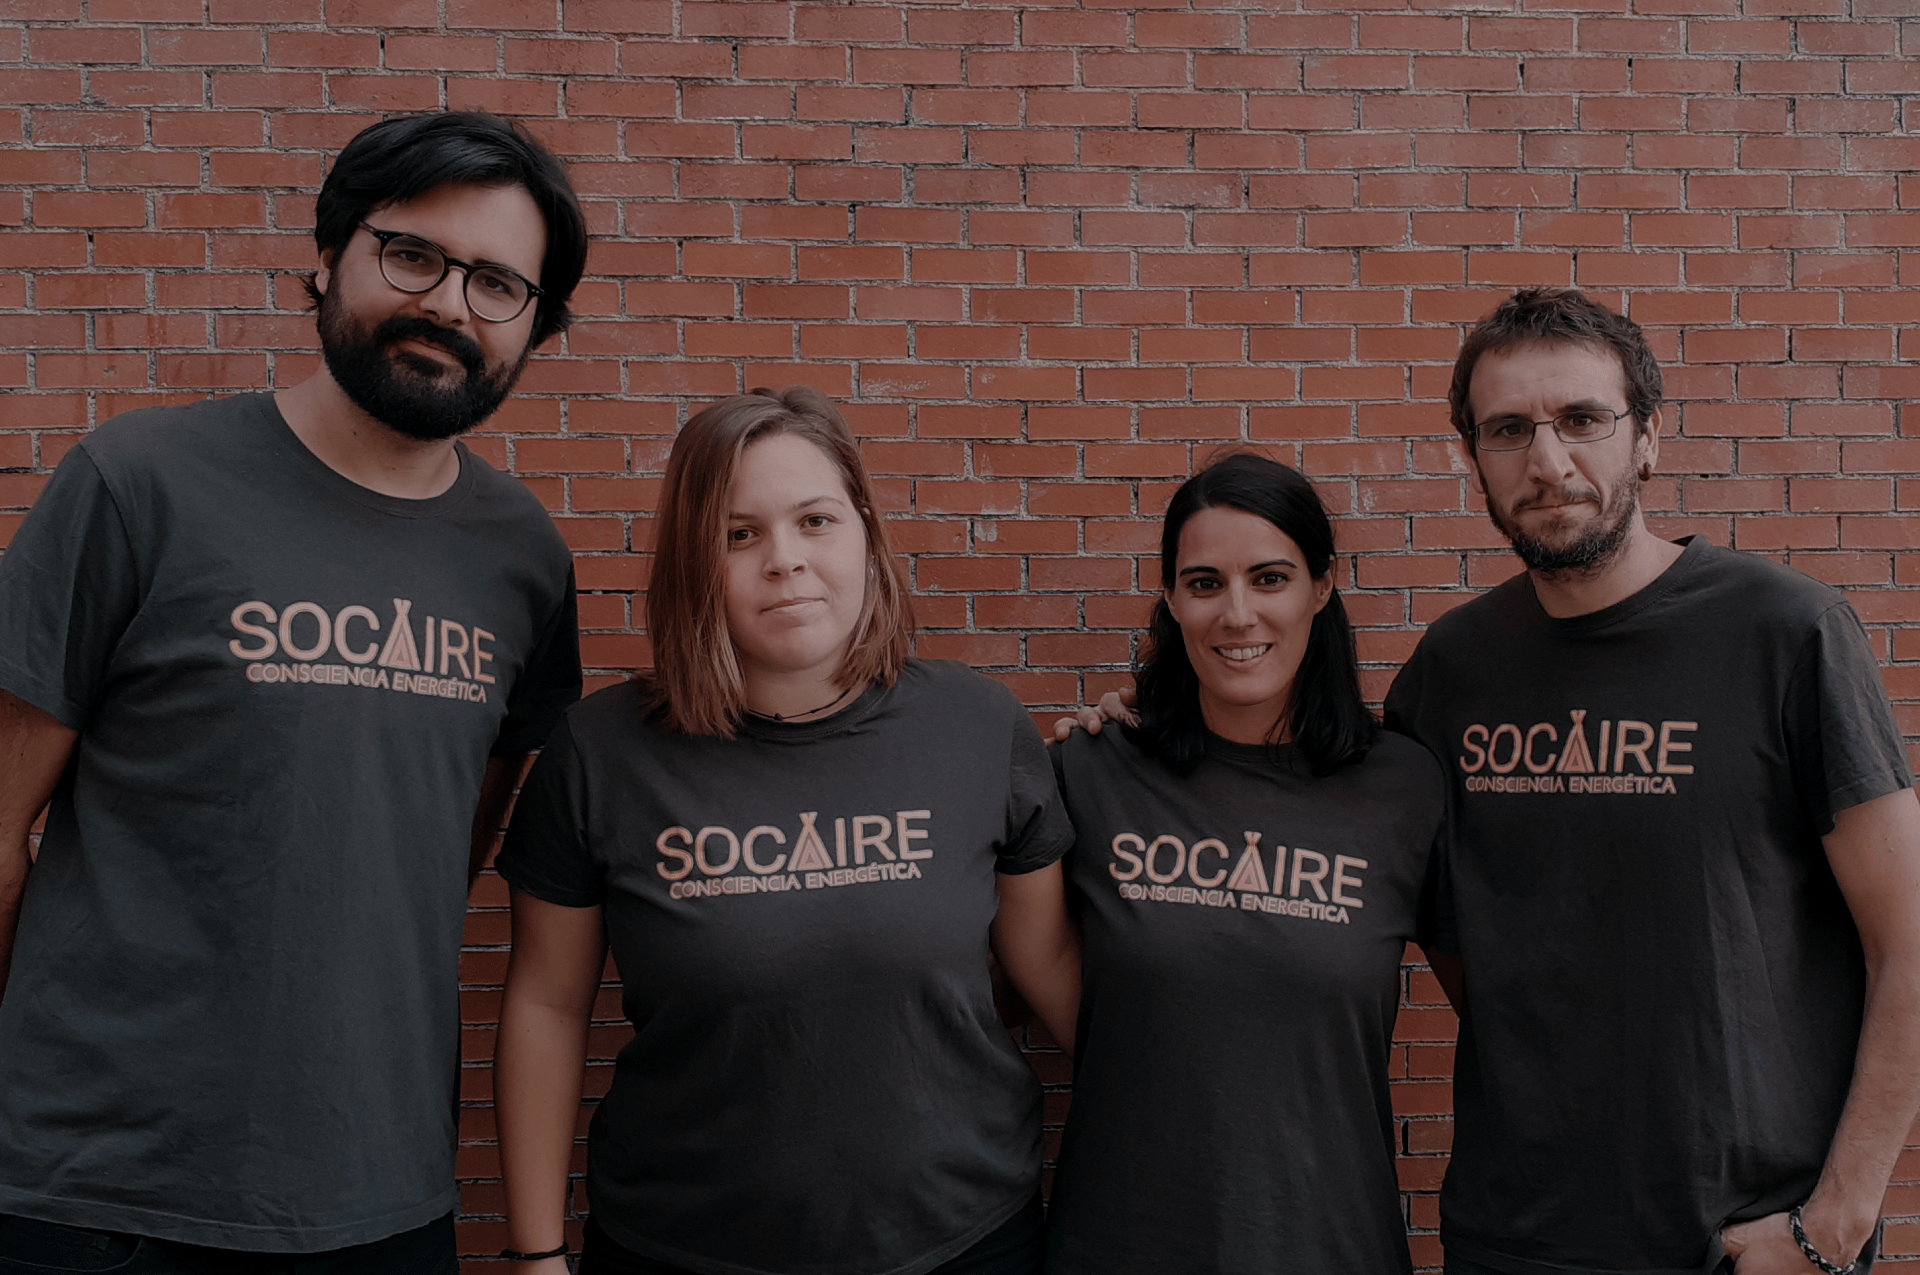 equipo socaire